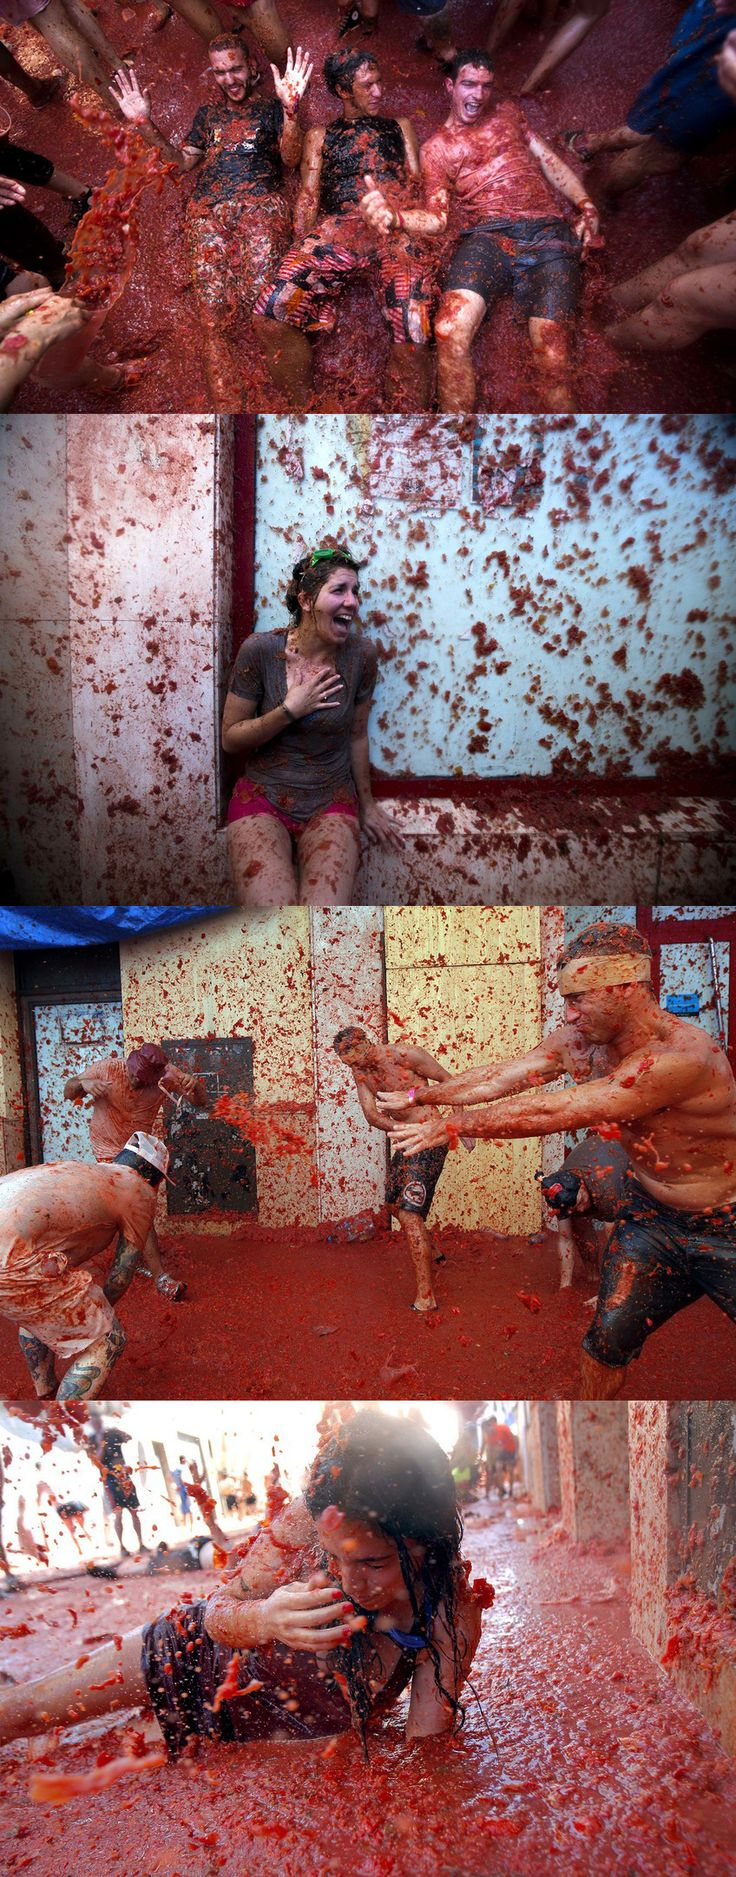 """People from around the world descended on the streets of Buñol, Spain for its annual La Tomatina festival, where participants throw """"more than 100 metric tons of over-ripe tomatoes in the streets."""""""